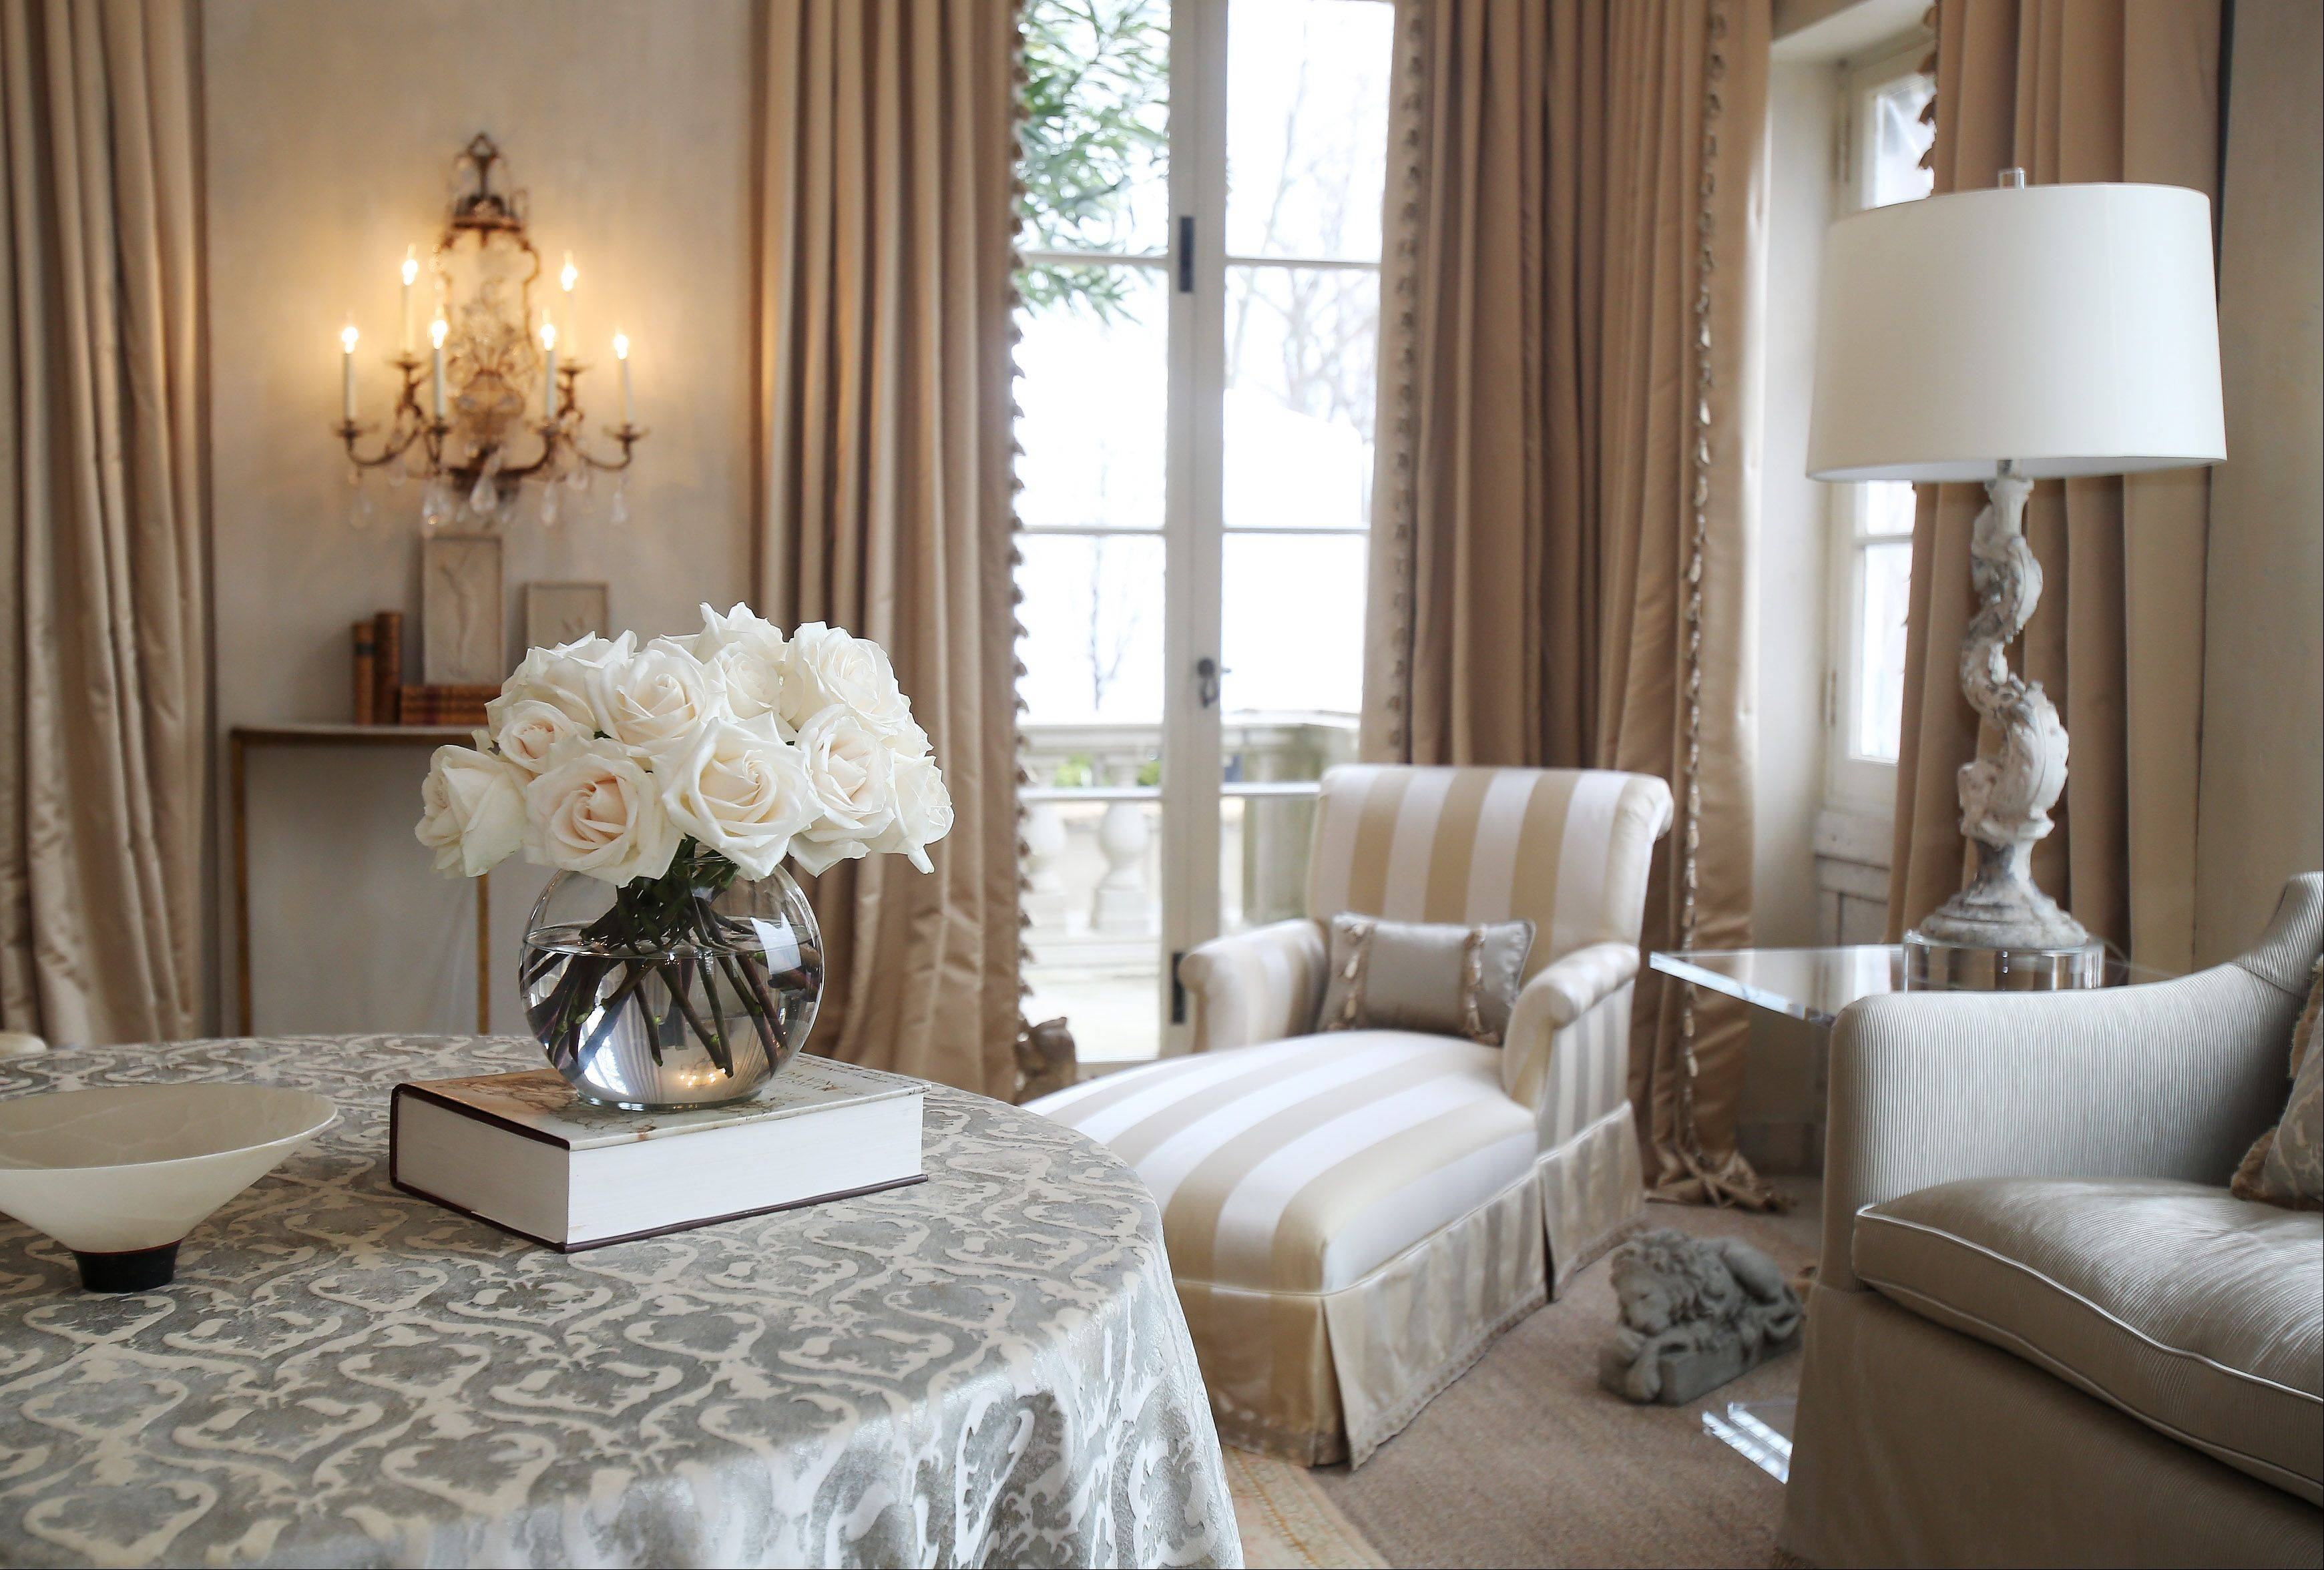 Gail Plechaty of Old Mill Creek used a neutral palette to create an elegant Morning Room.